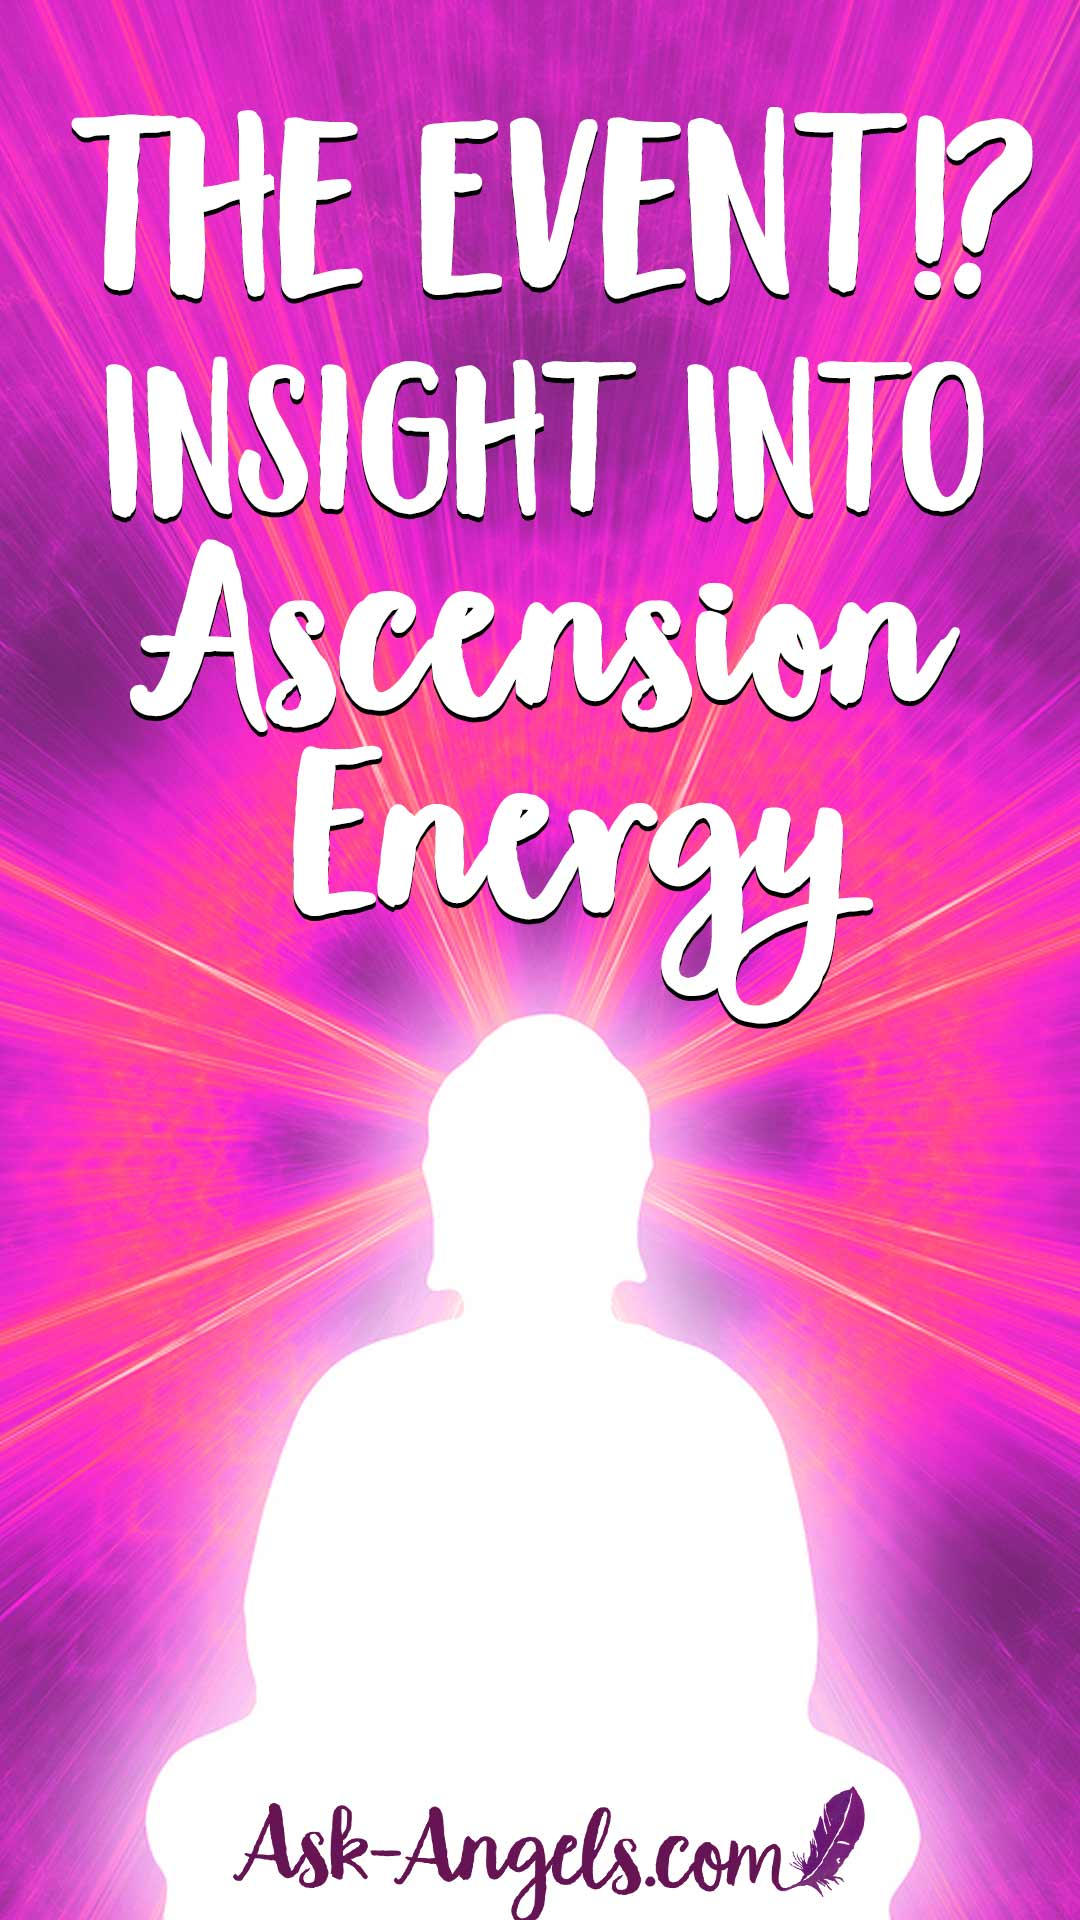 The Event!? Insight Into Ascension Energy and The Ascension Event.